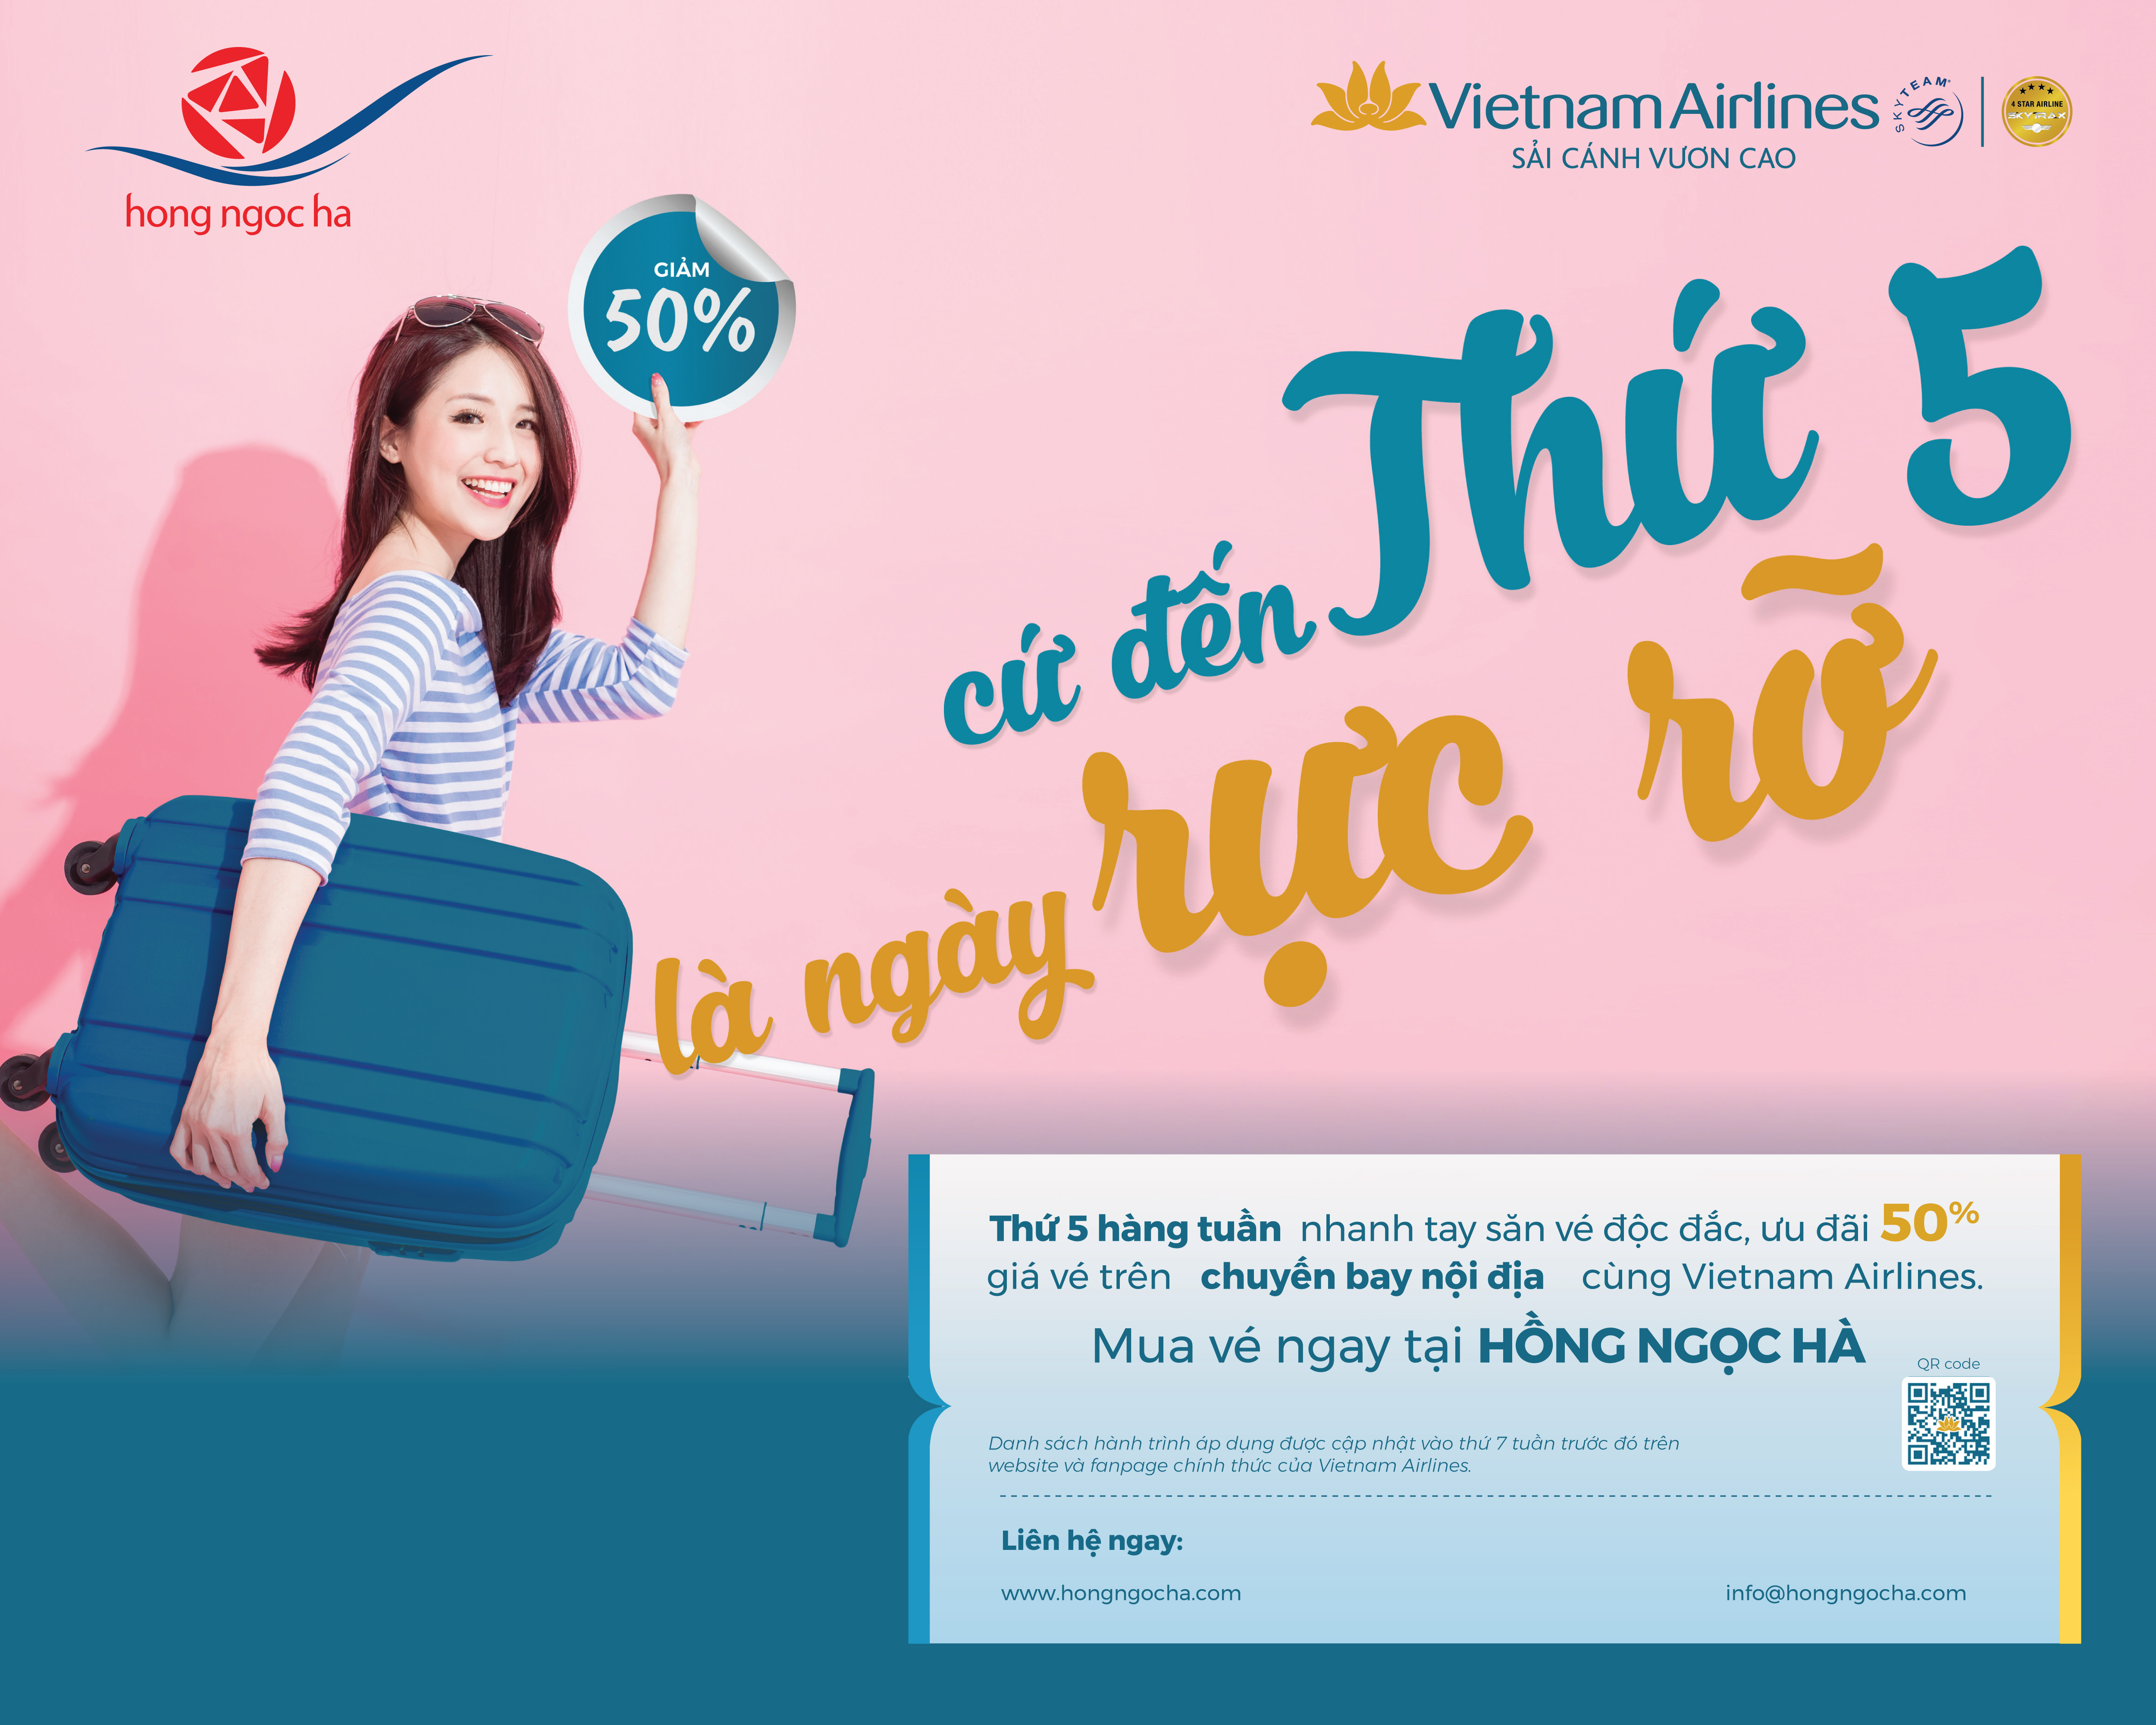 Brilliant Thursday with Vietnam Airlines